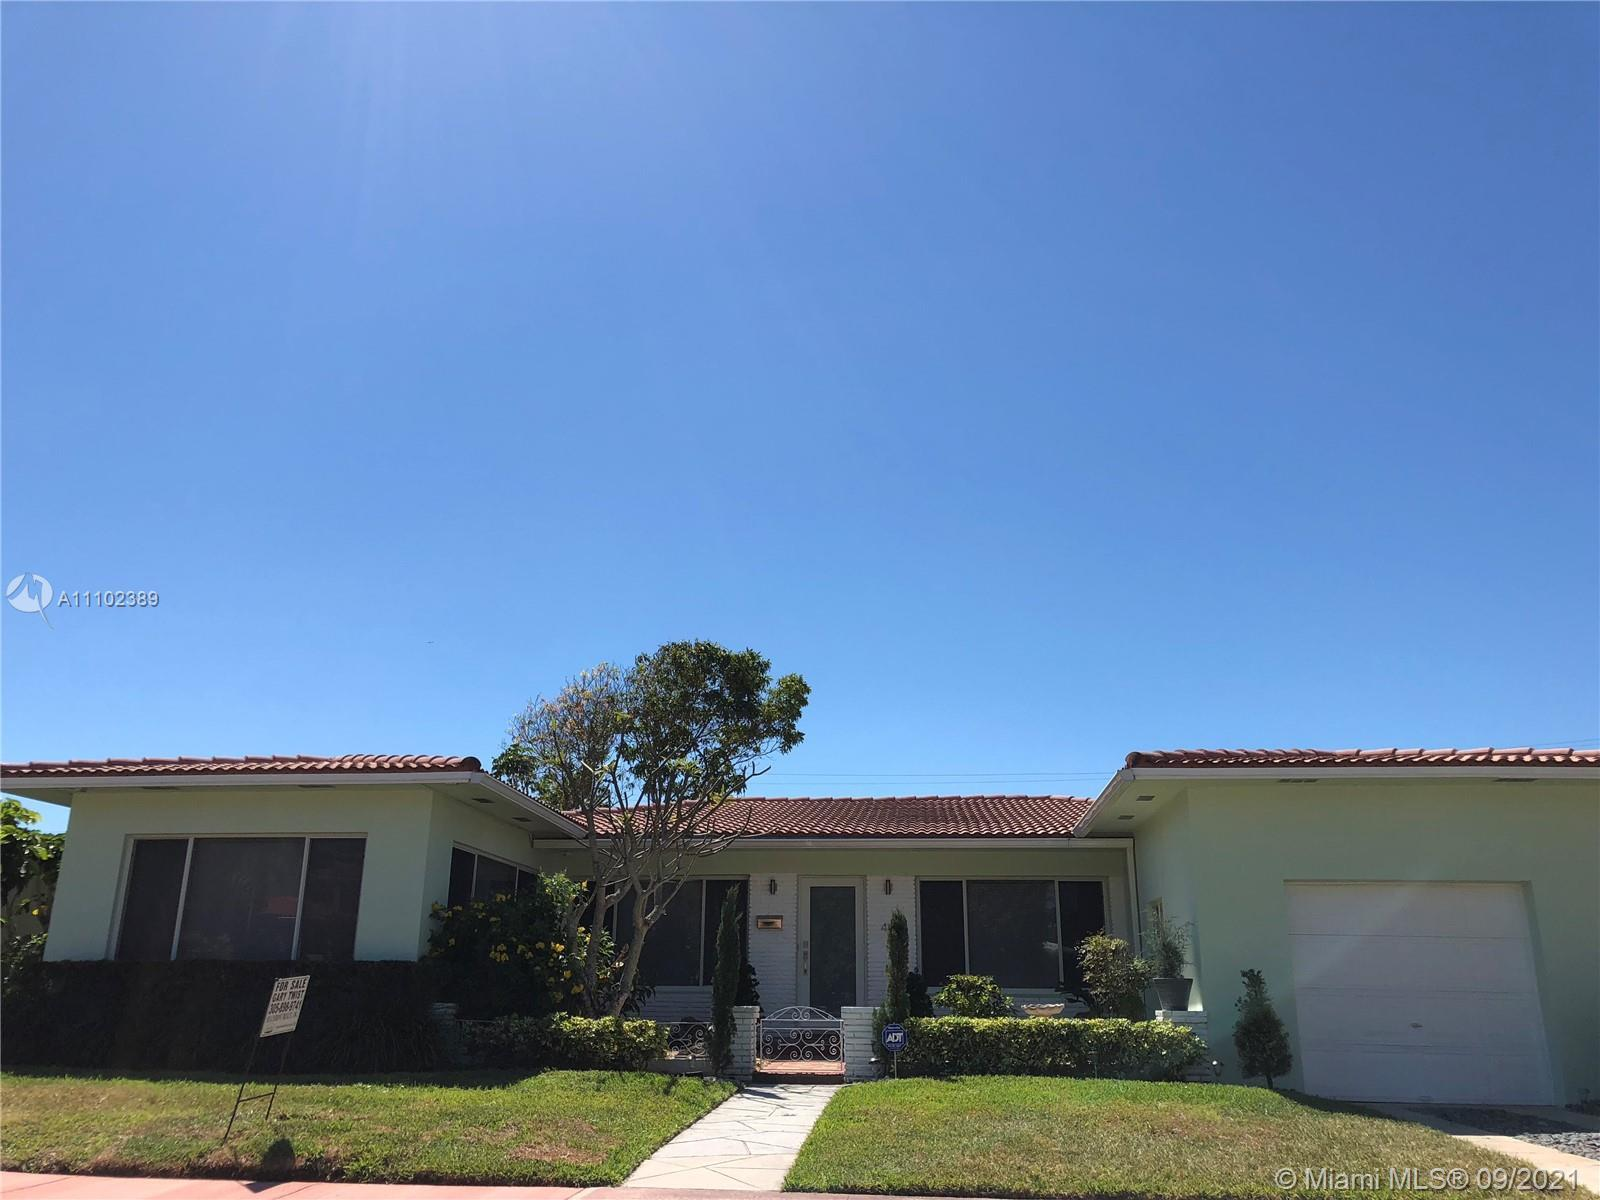 A gated and golf course community with parks and a wonderful community. The home is a mid-century ra